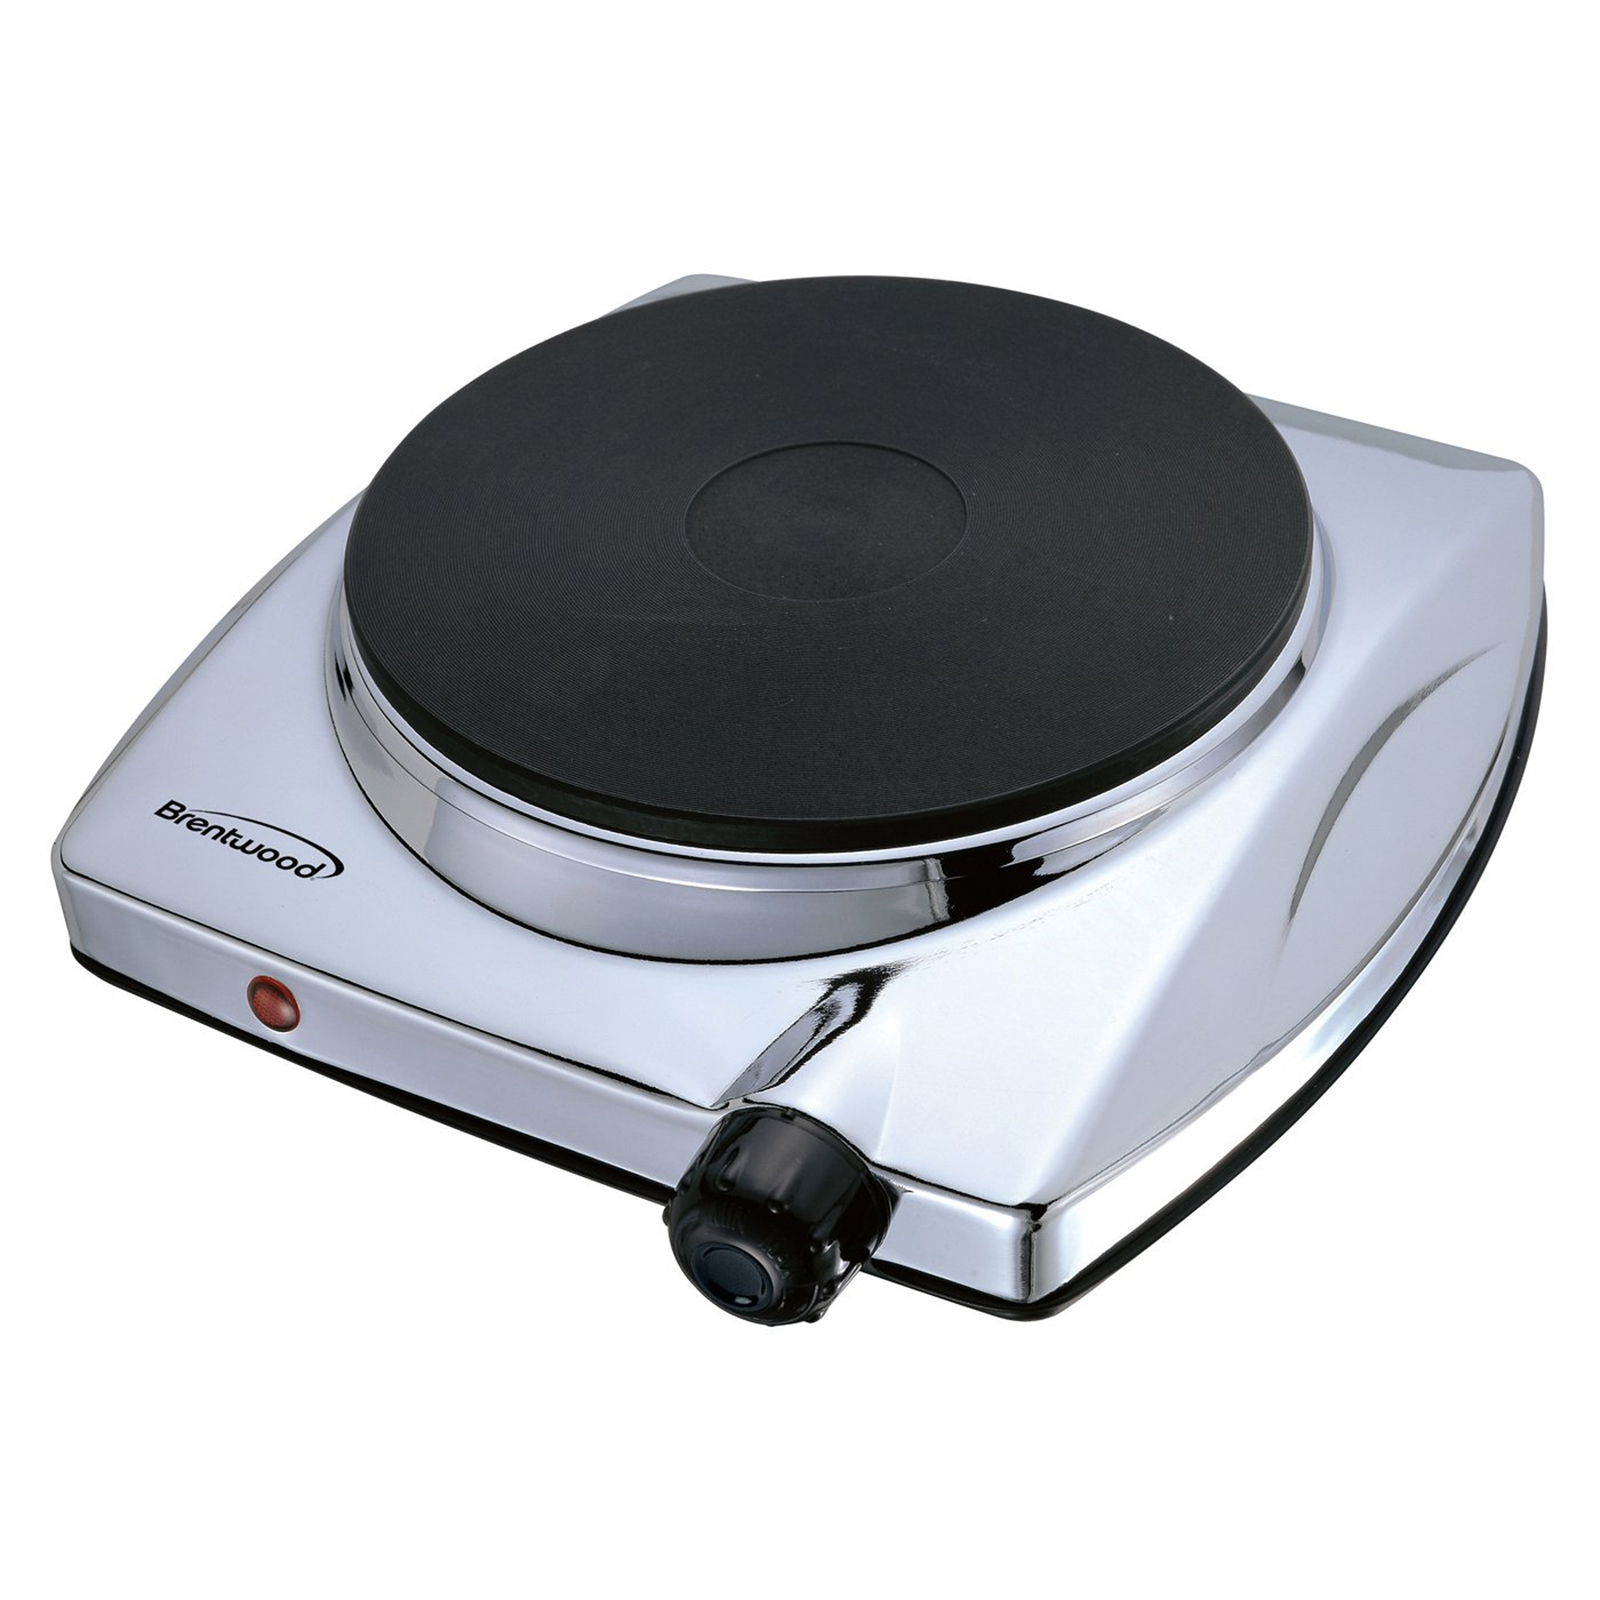 Brentwood 97083279m Electric Single Hot Plate - Chrome